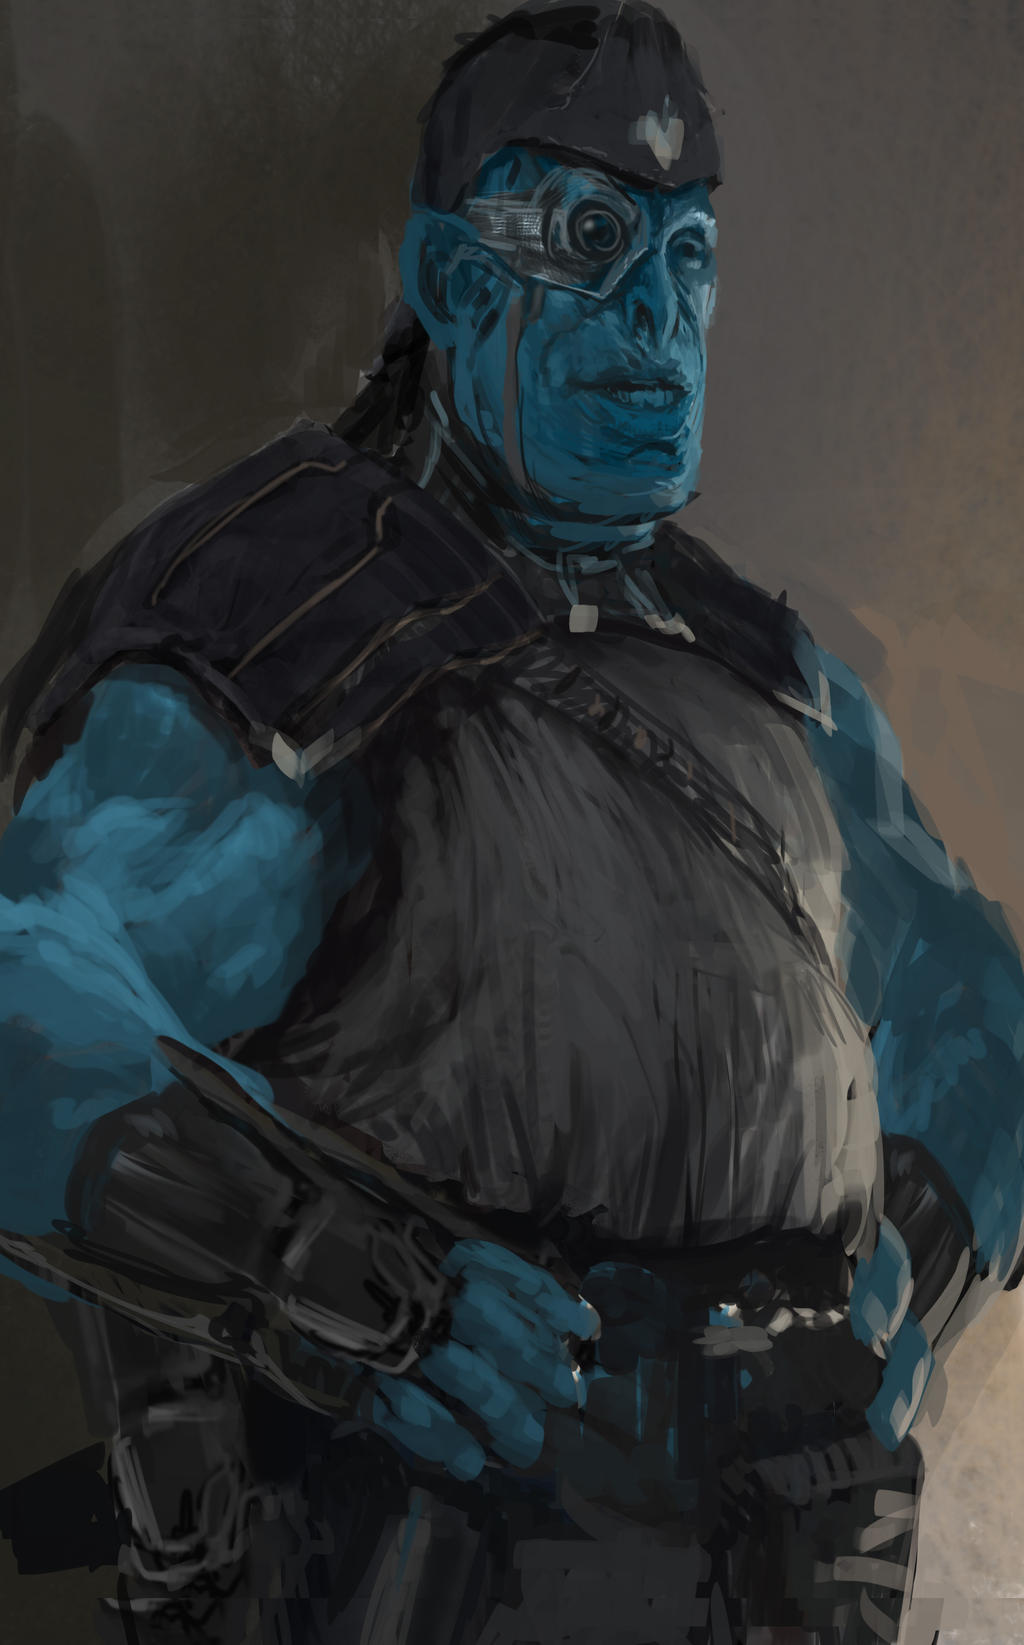 Thanos guardians of the galaxy concept art